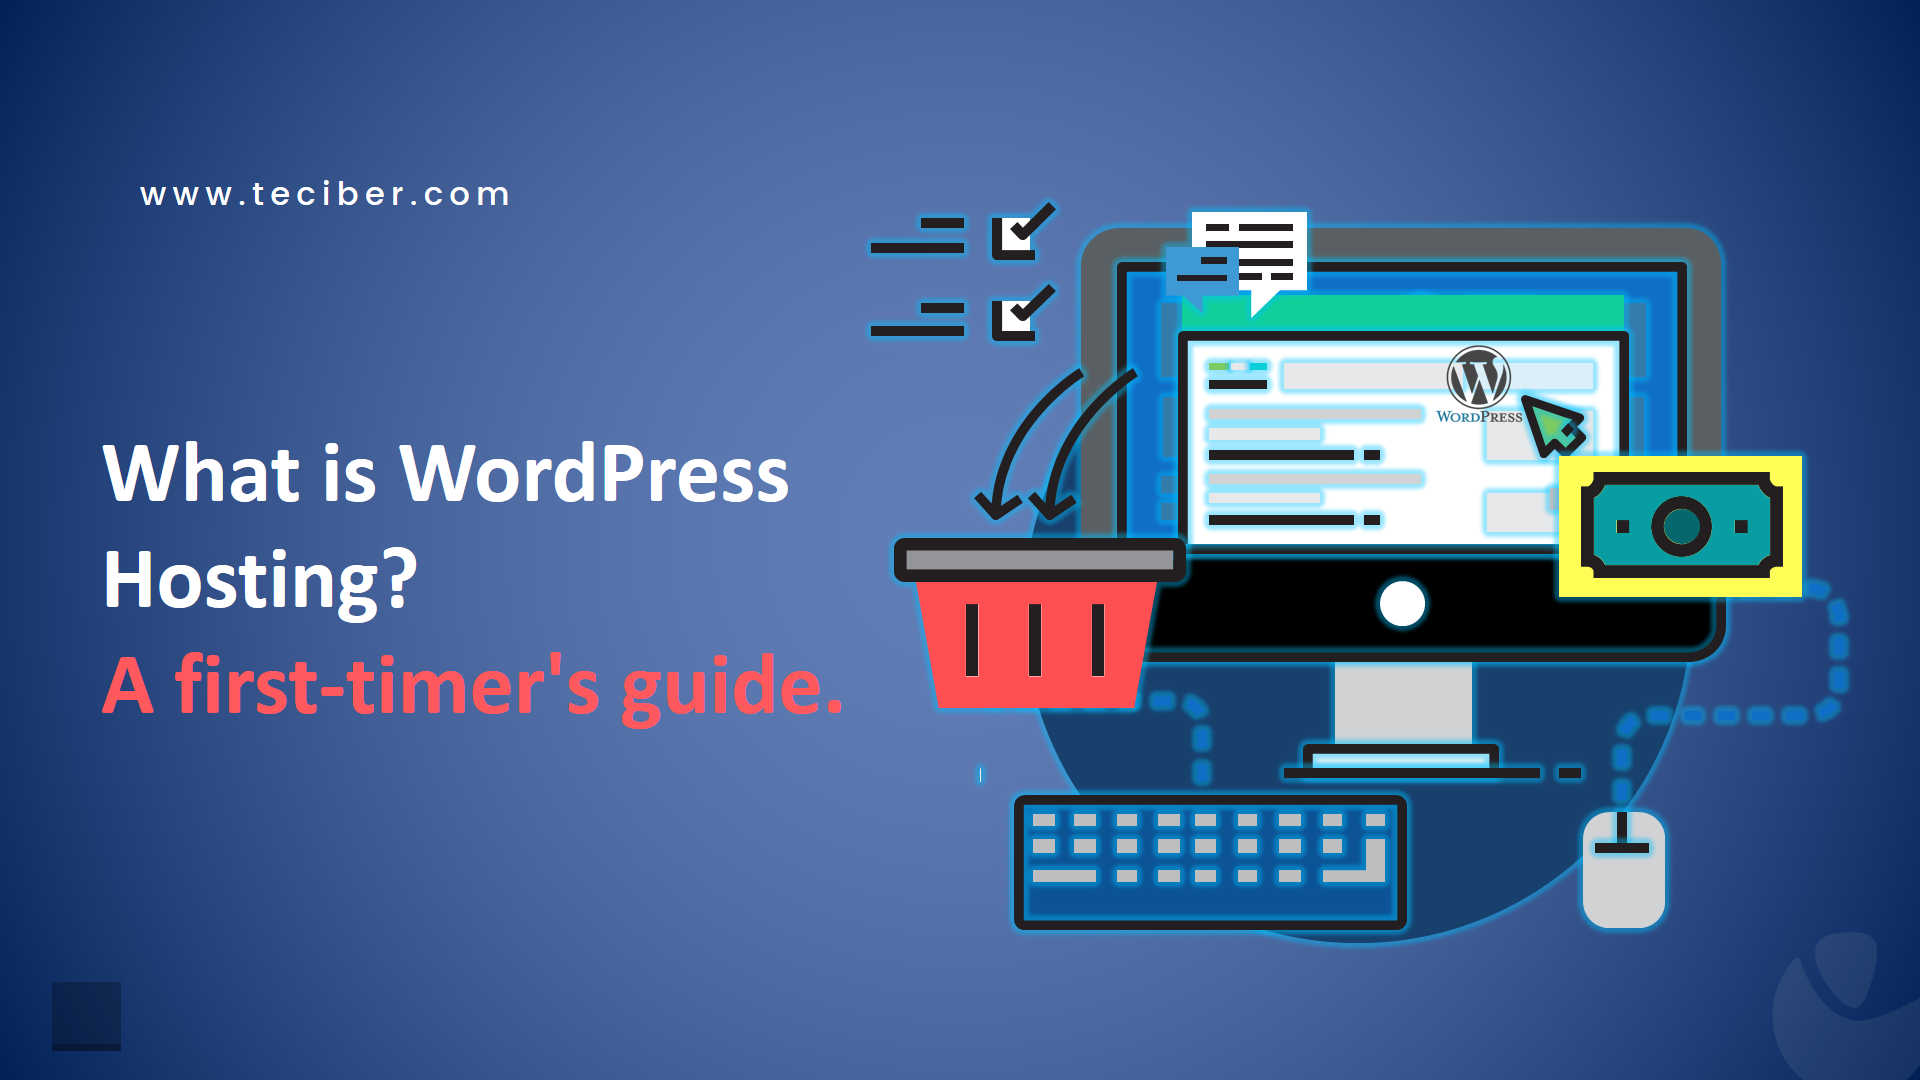 What is WordPress Hosting? A first-timer's guide.